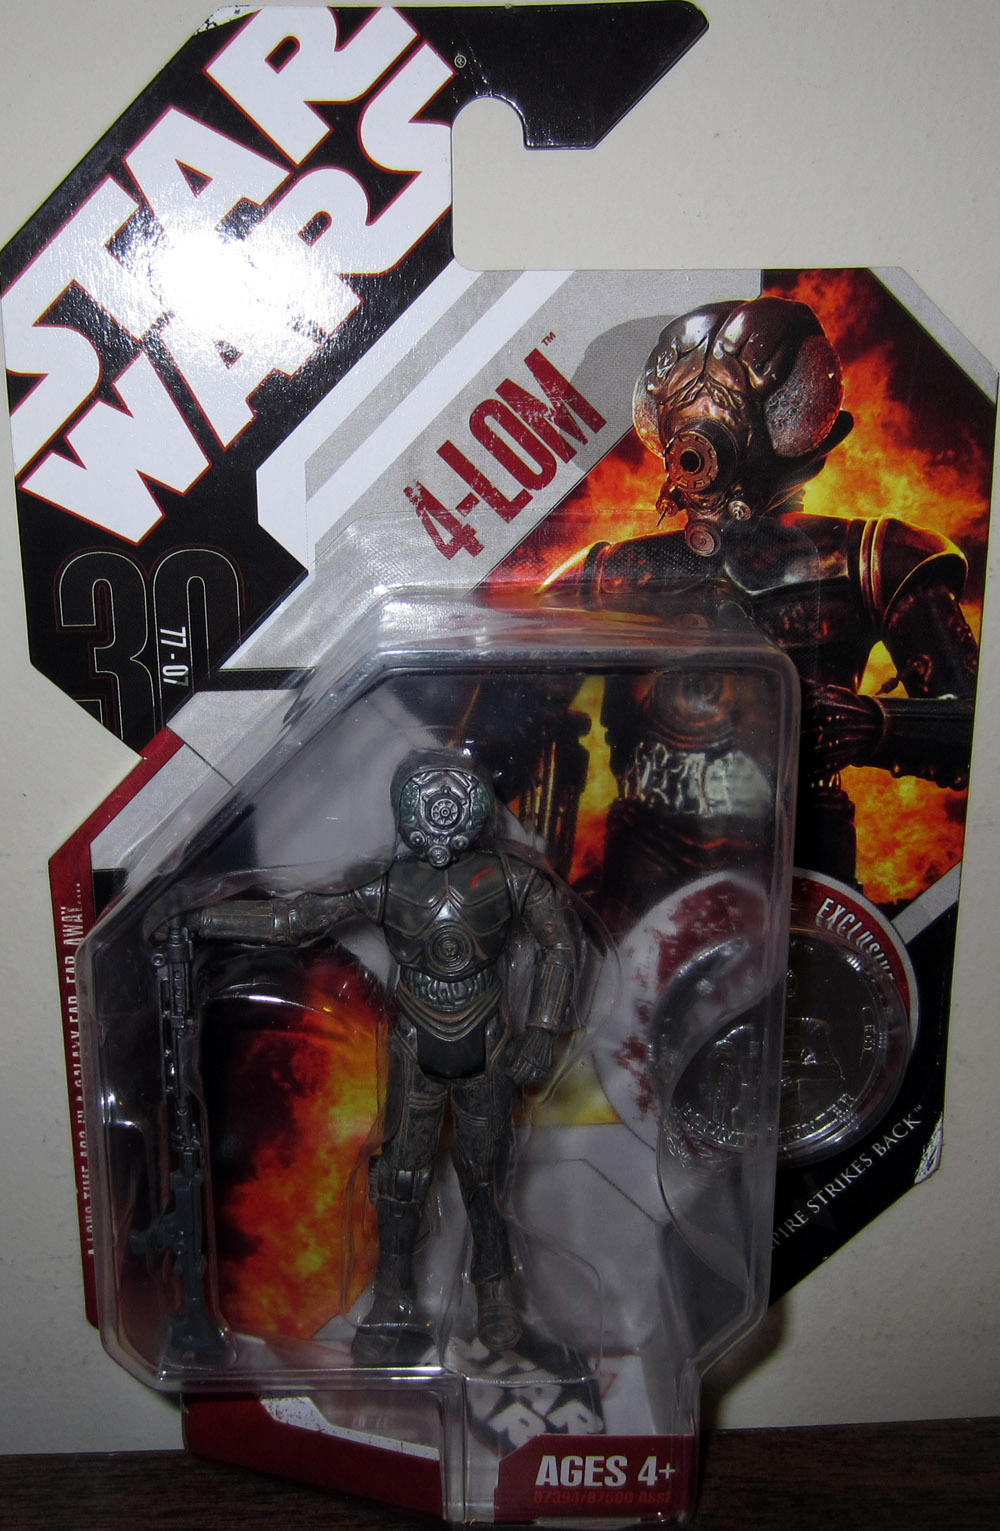 4-LOM (30th Anniversary)